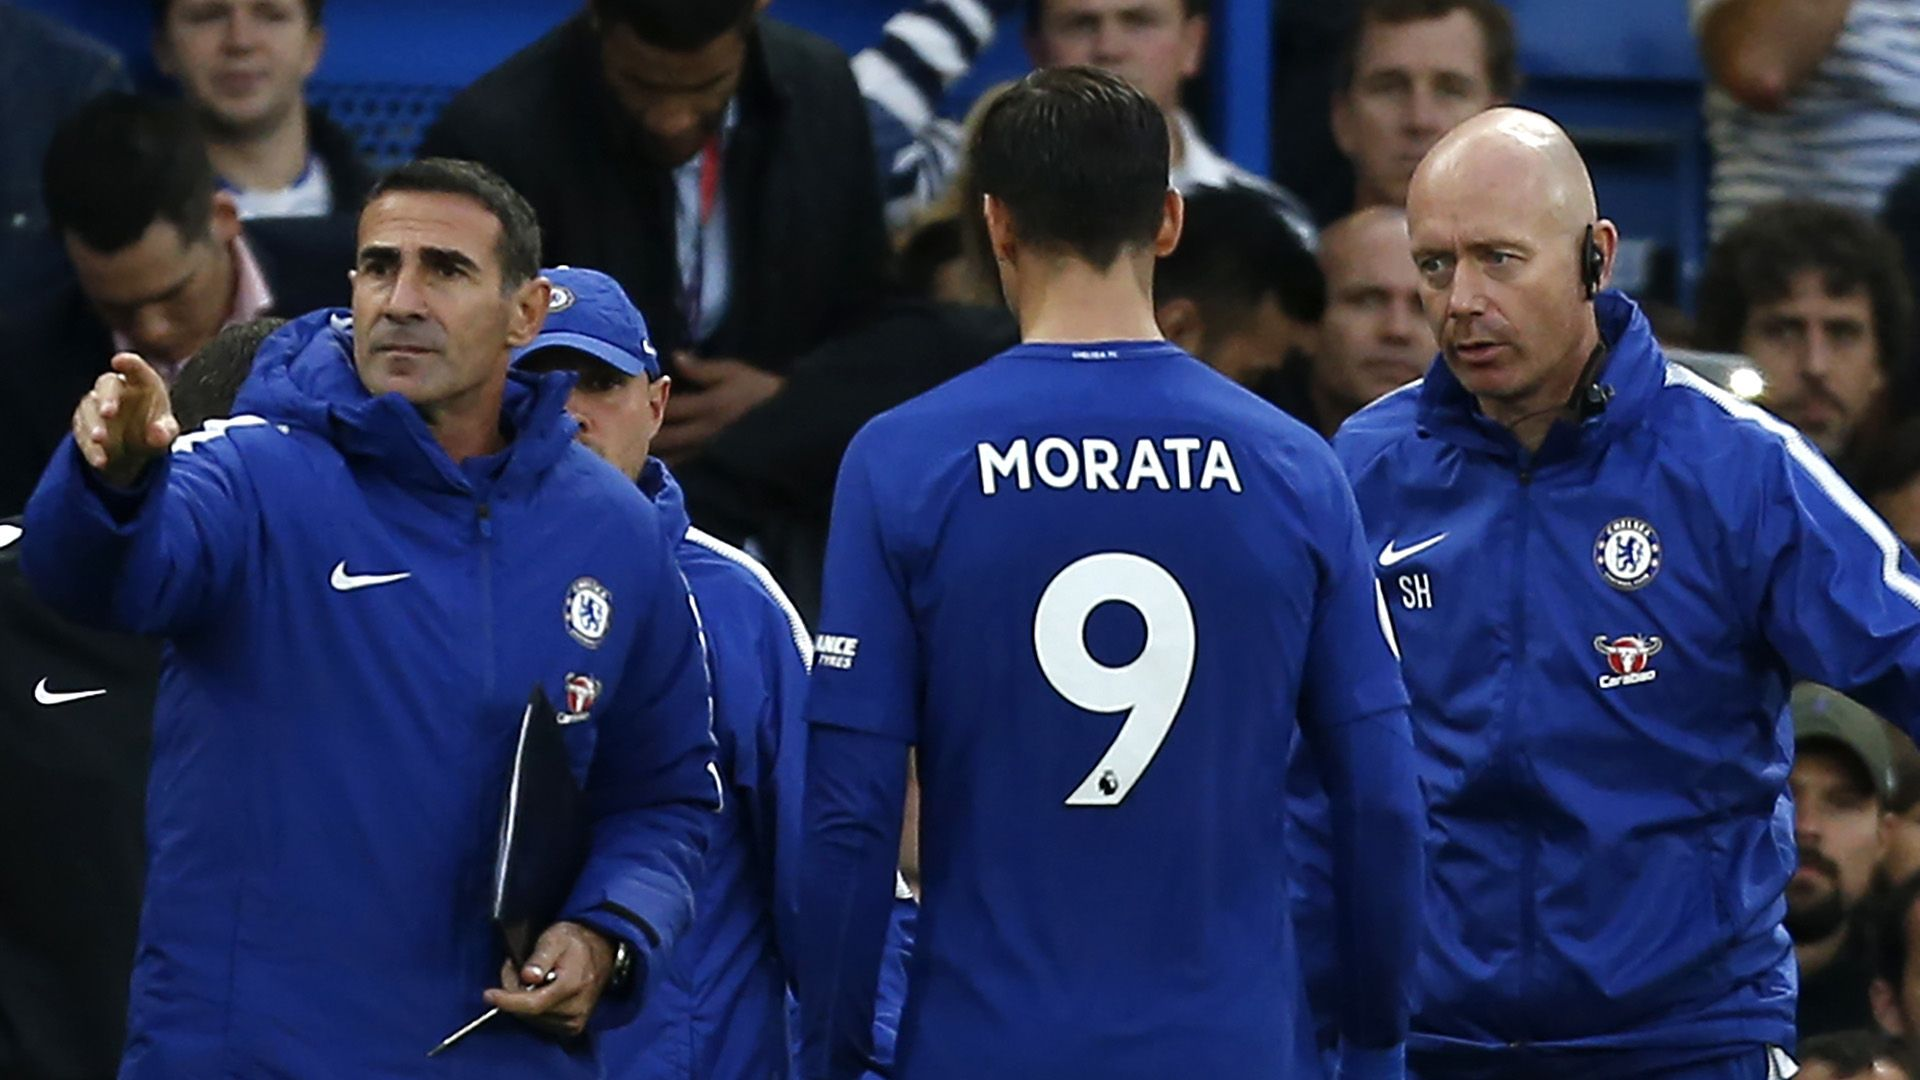 Chelsea To Be Without Morata For Weeks | Busy Buddies